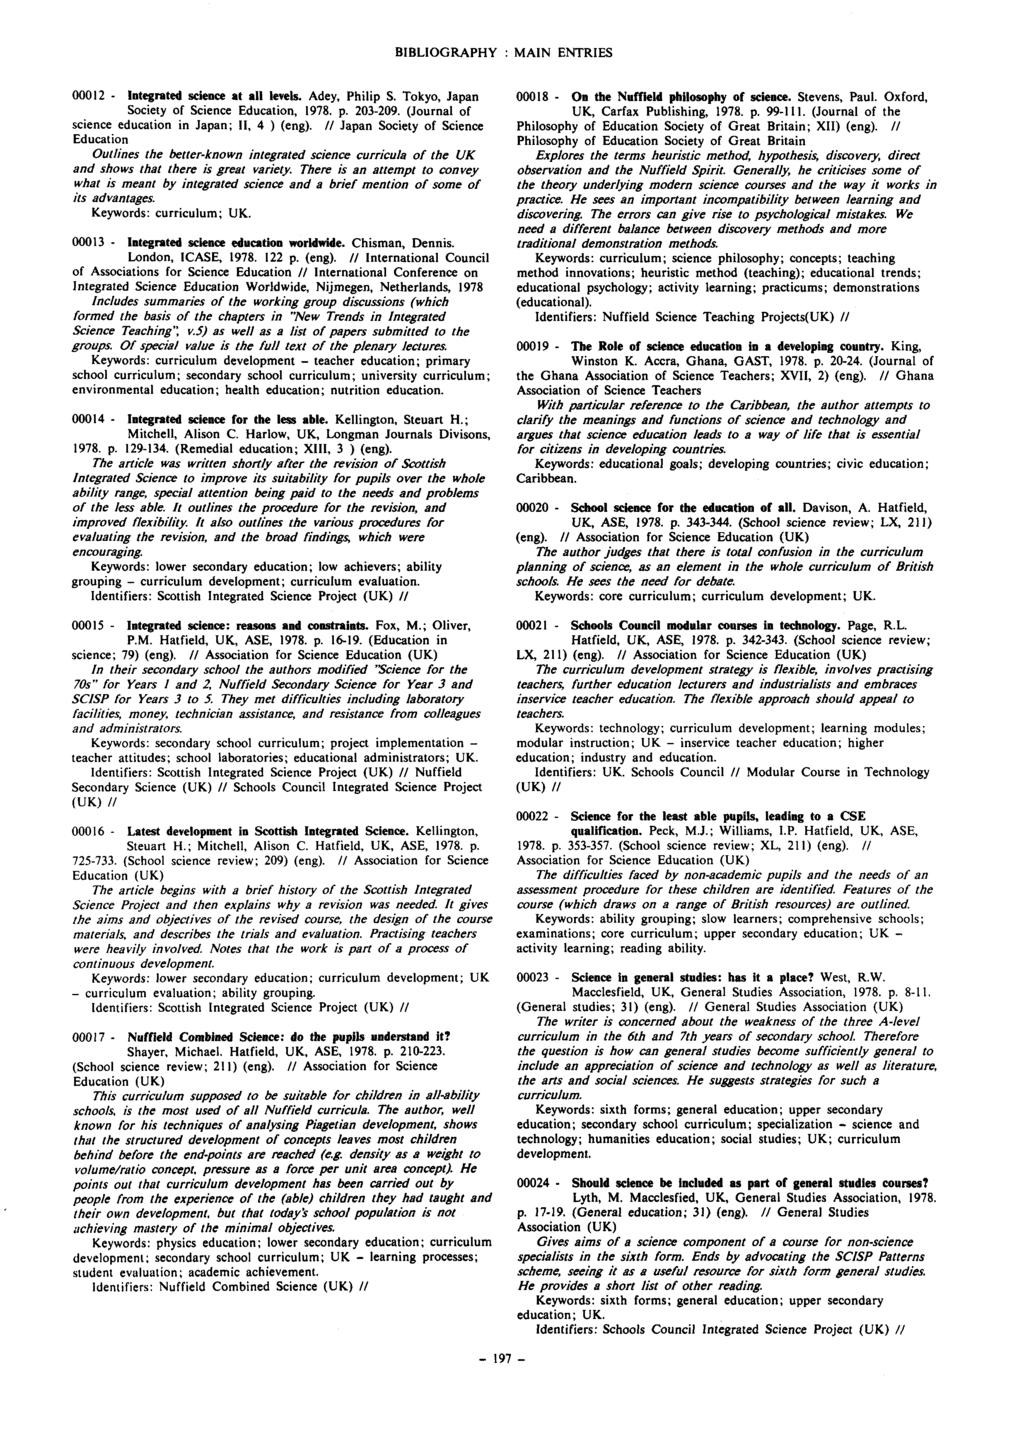 BIBLIOGRAPHY : MAIN ENTRIES 00012 - Integrated science at all levels. Adey, Philip S. Tokyo, Japan Society of Science Education, 1978. p. 203-209.